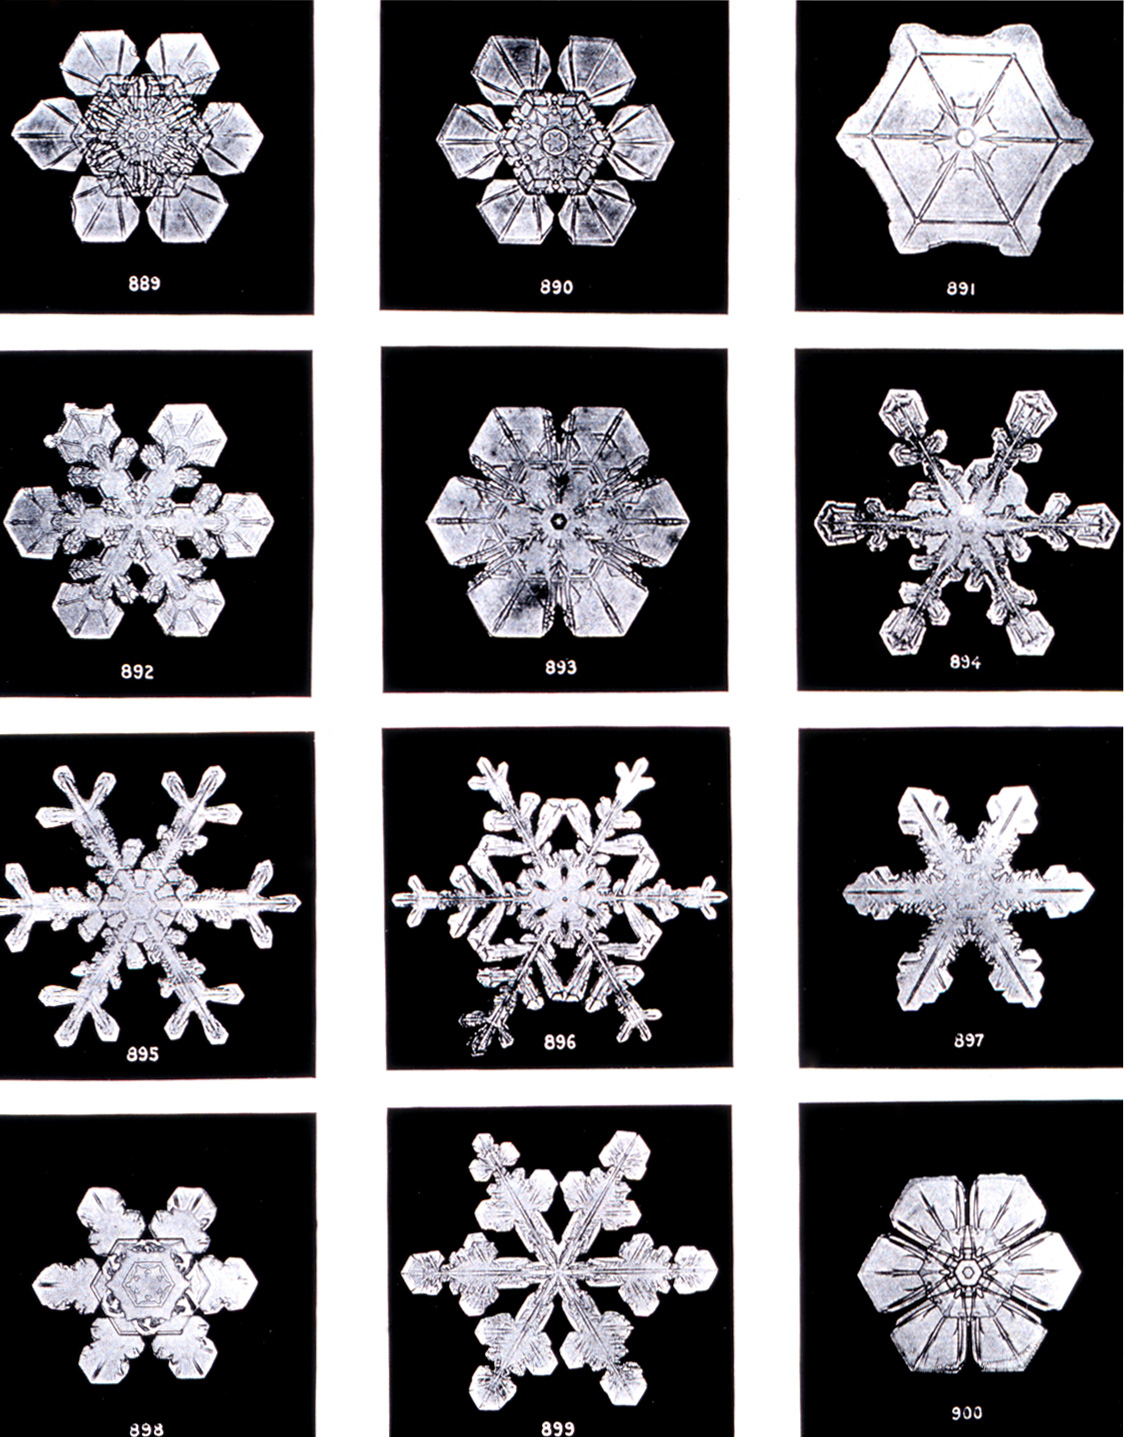 Snowflakes forming complex symmetrical patterns is an example of emergence in a physical system.